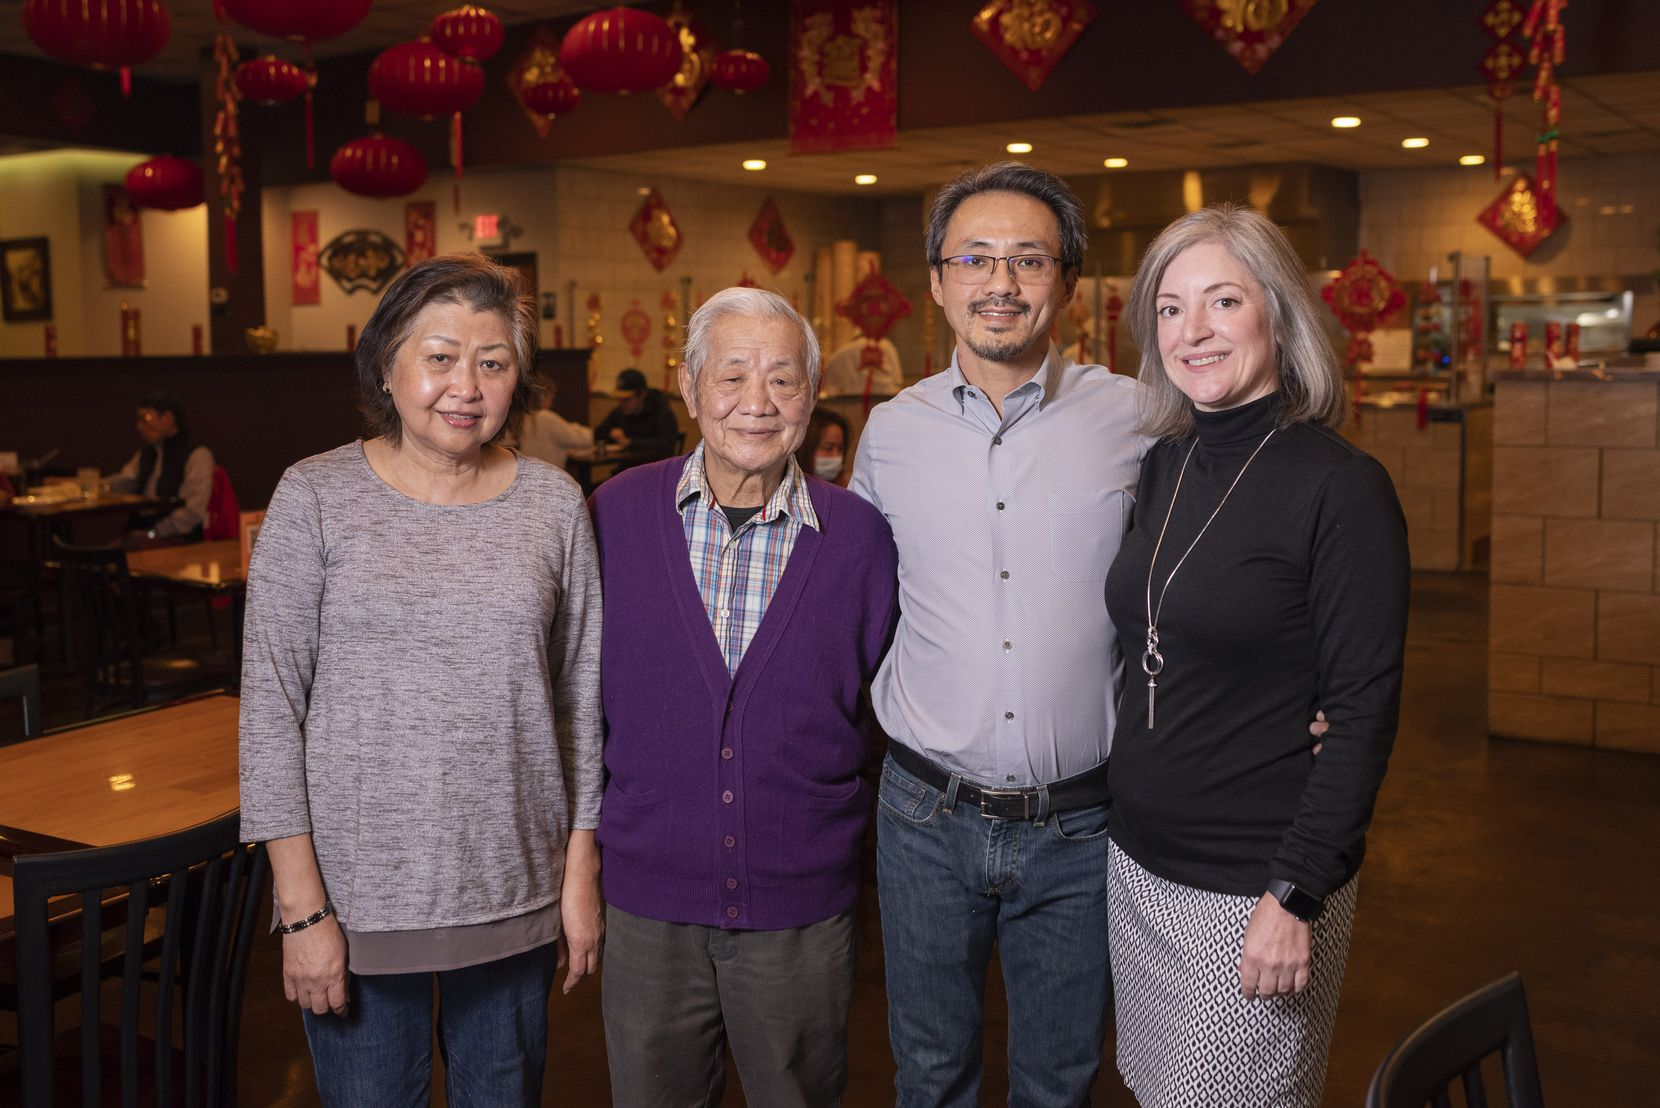 Jeng Chi founders Mei Teng, far-left, and Yuan Teng, with their son Francisco Teng and his wife Janelle Teng, co-owners